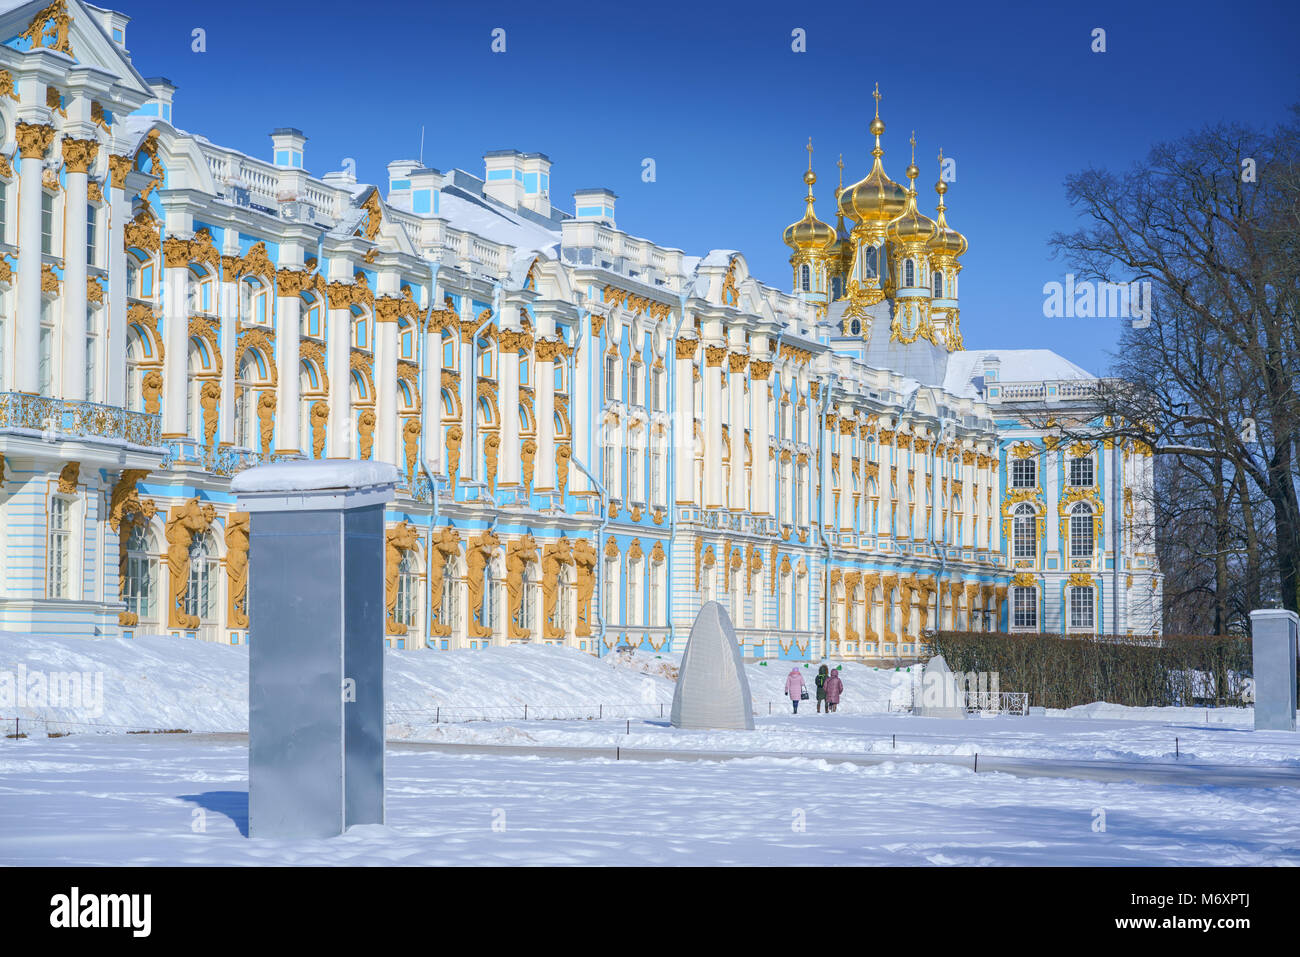 The Catherine Palace, Tsarskoye Selo, Pushkin, Saint-Petersburg, Russia - Stock Image